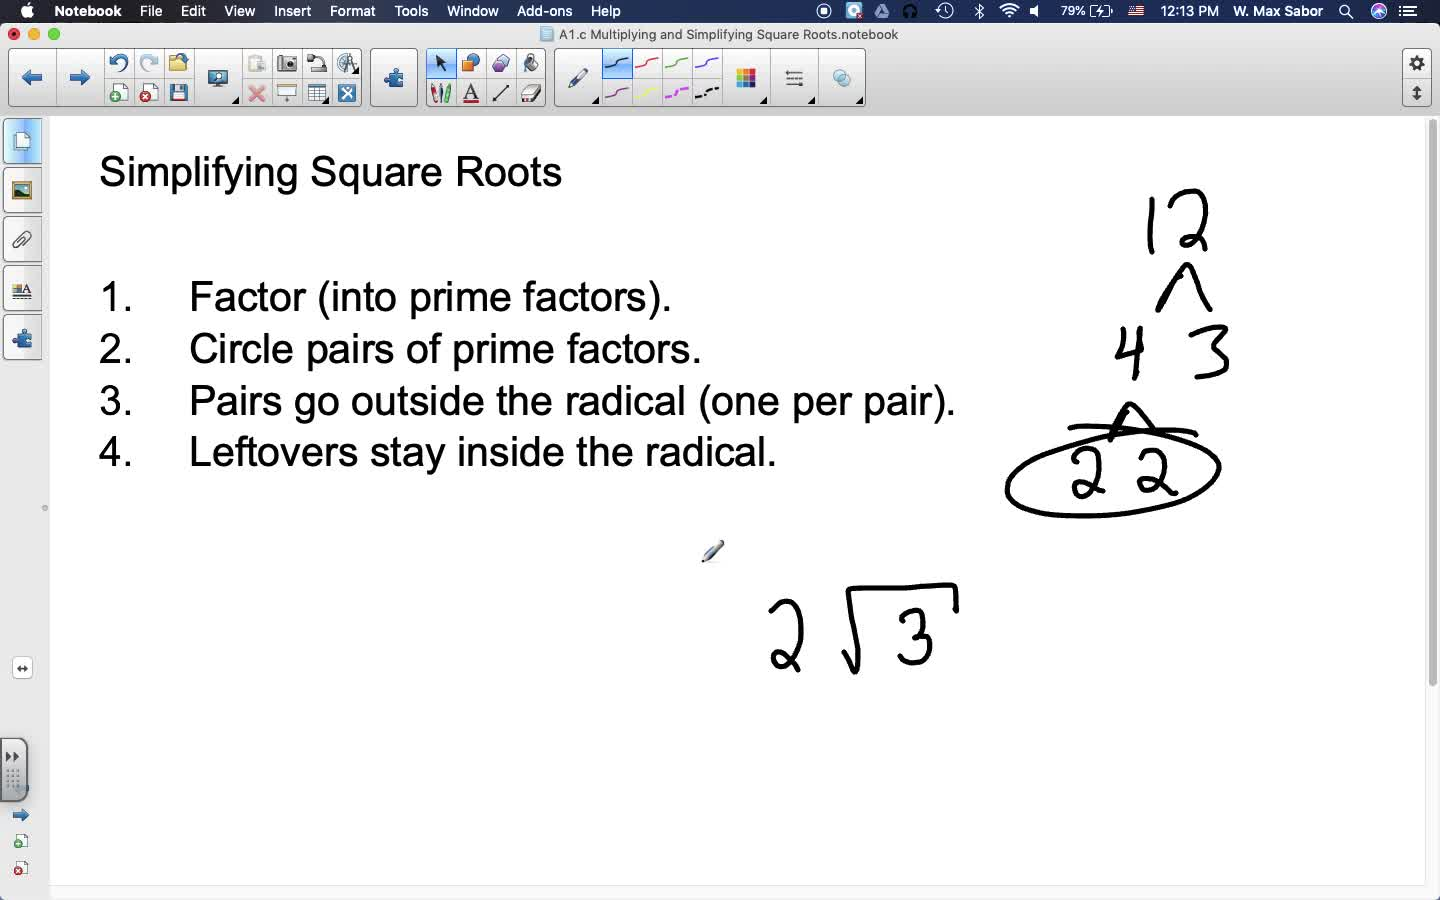 A1.c Multiplying and Simplifying Square Roots